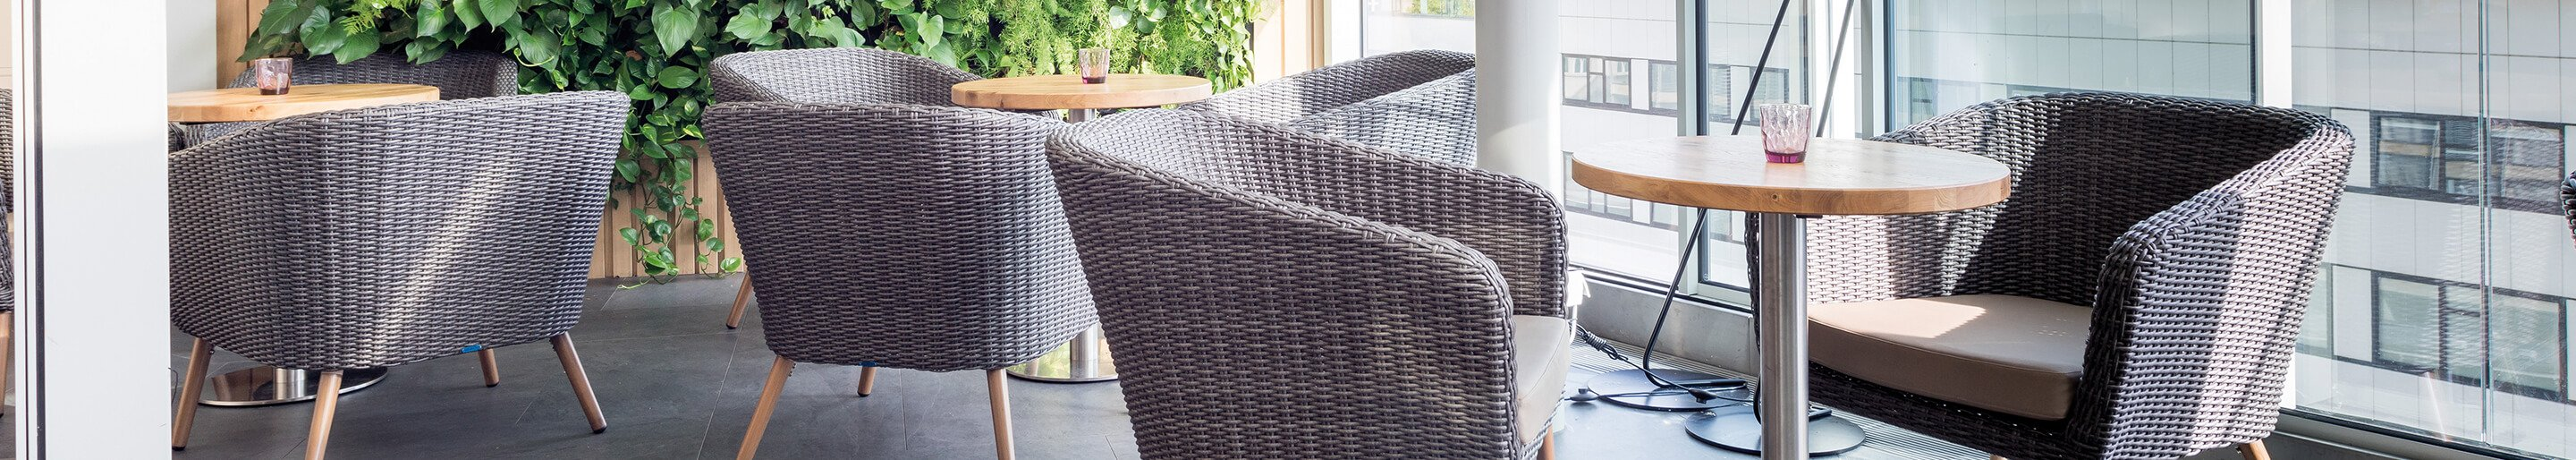 Outdoor Sofas for your restaurant or hotel